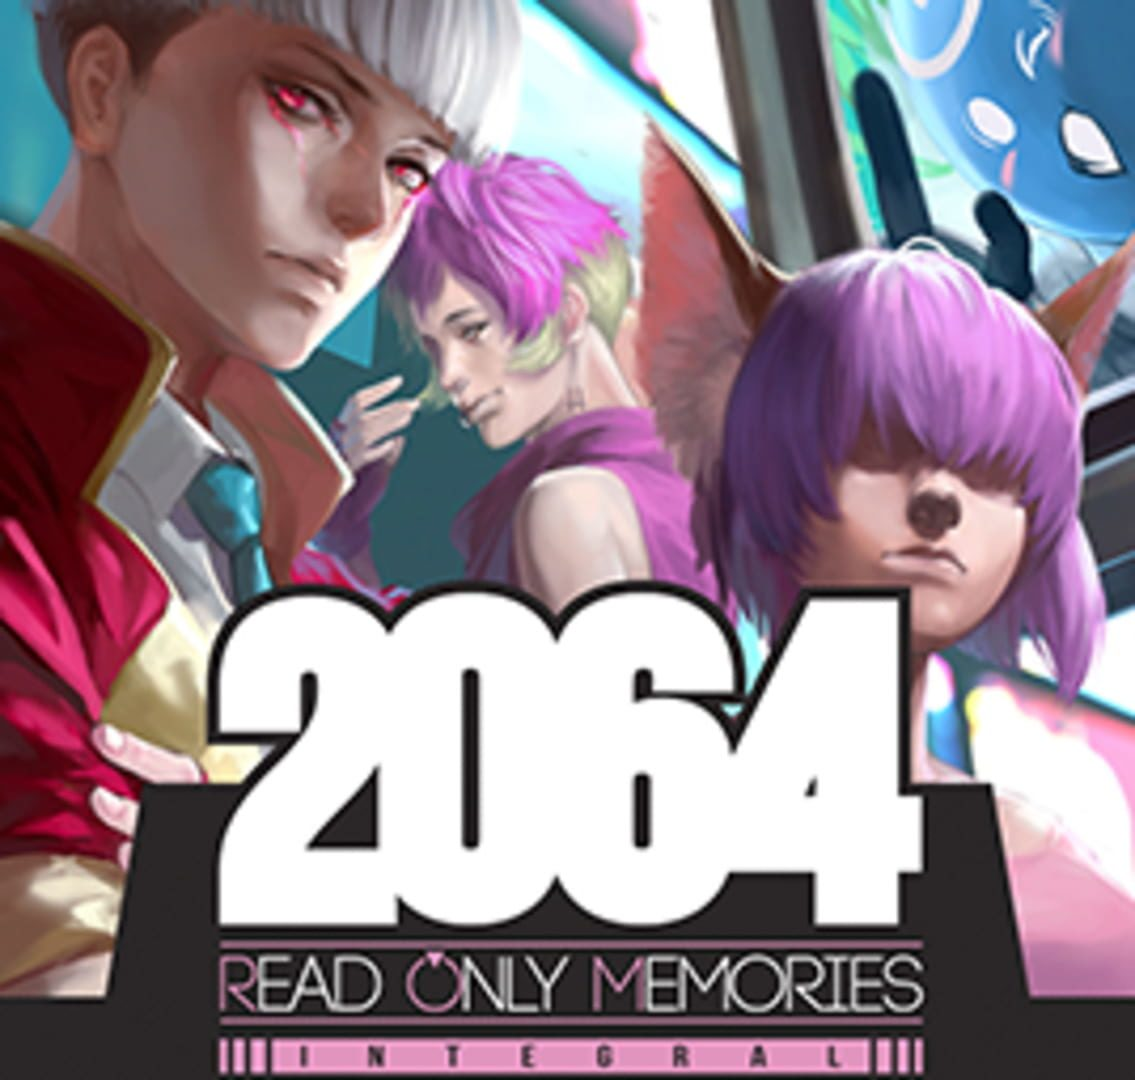 buy 2064: Read Only Memories INTEGRAL cd key for all platform